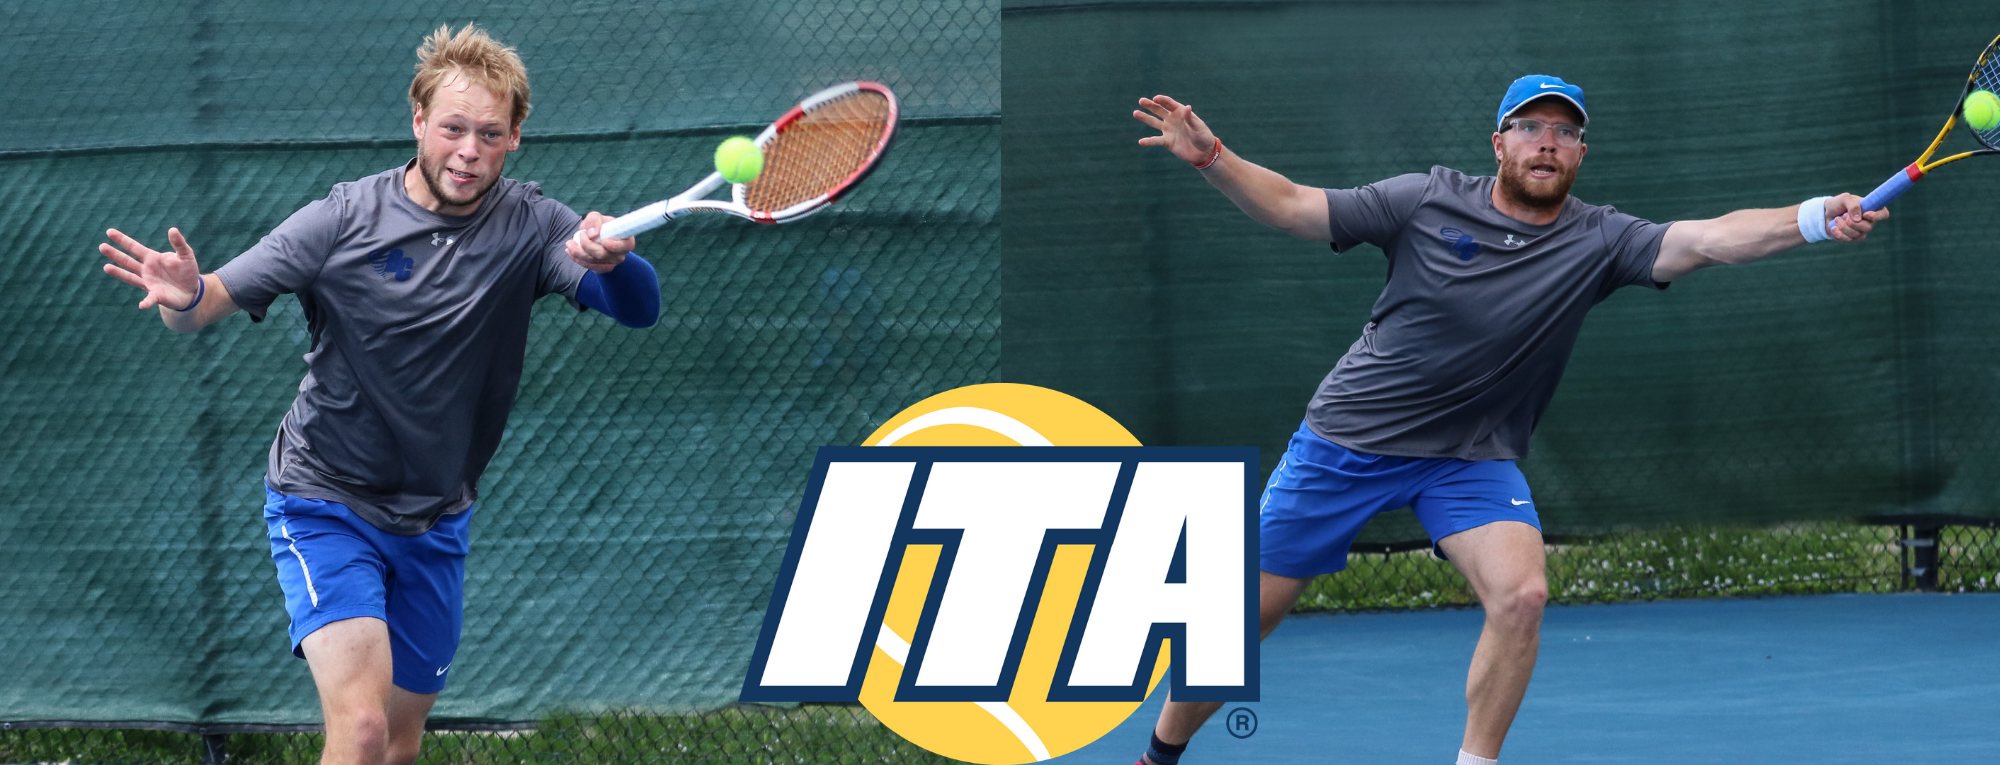 BC Alumni Hengst, Mittring Awarded ITA All-Academic Scholar-Athlete Awards